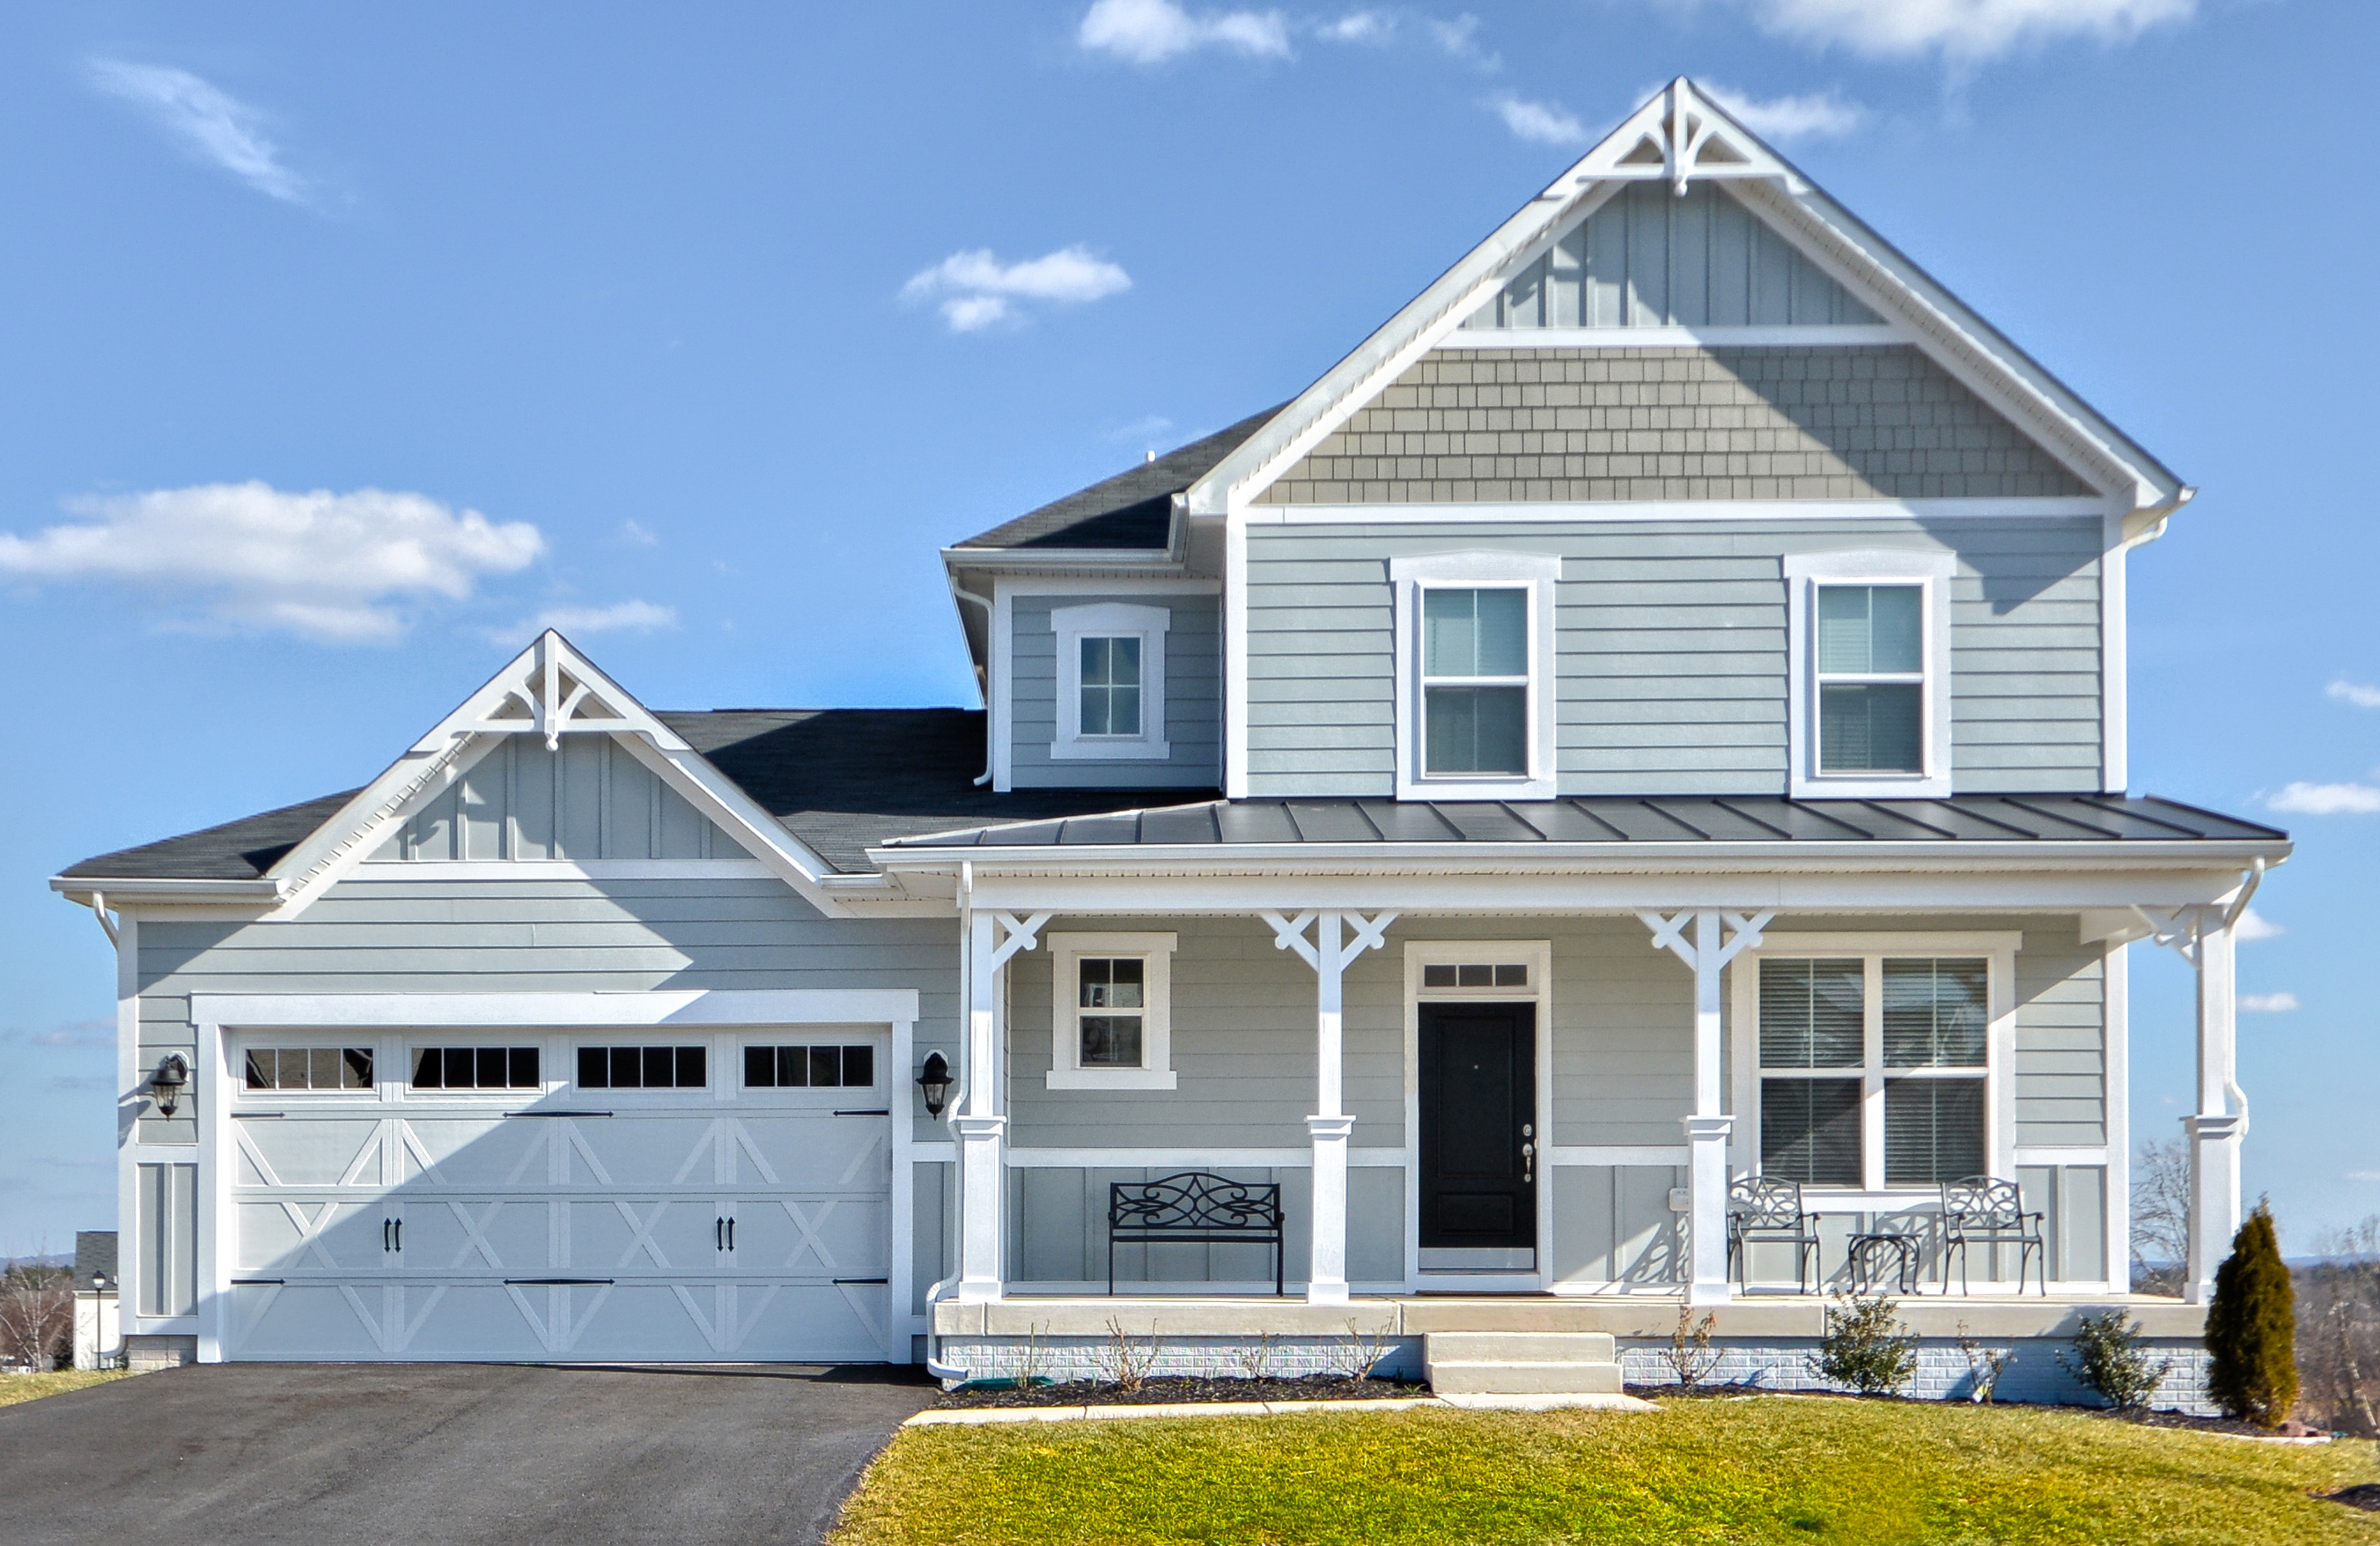 Blue, gray and white siding color scheme. White trim and columns. Black metal accent roof. Black shingled roof. Vertical siding accents. White garage door with black front door.